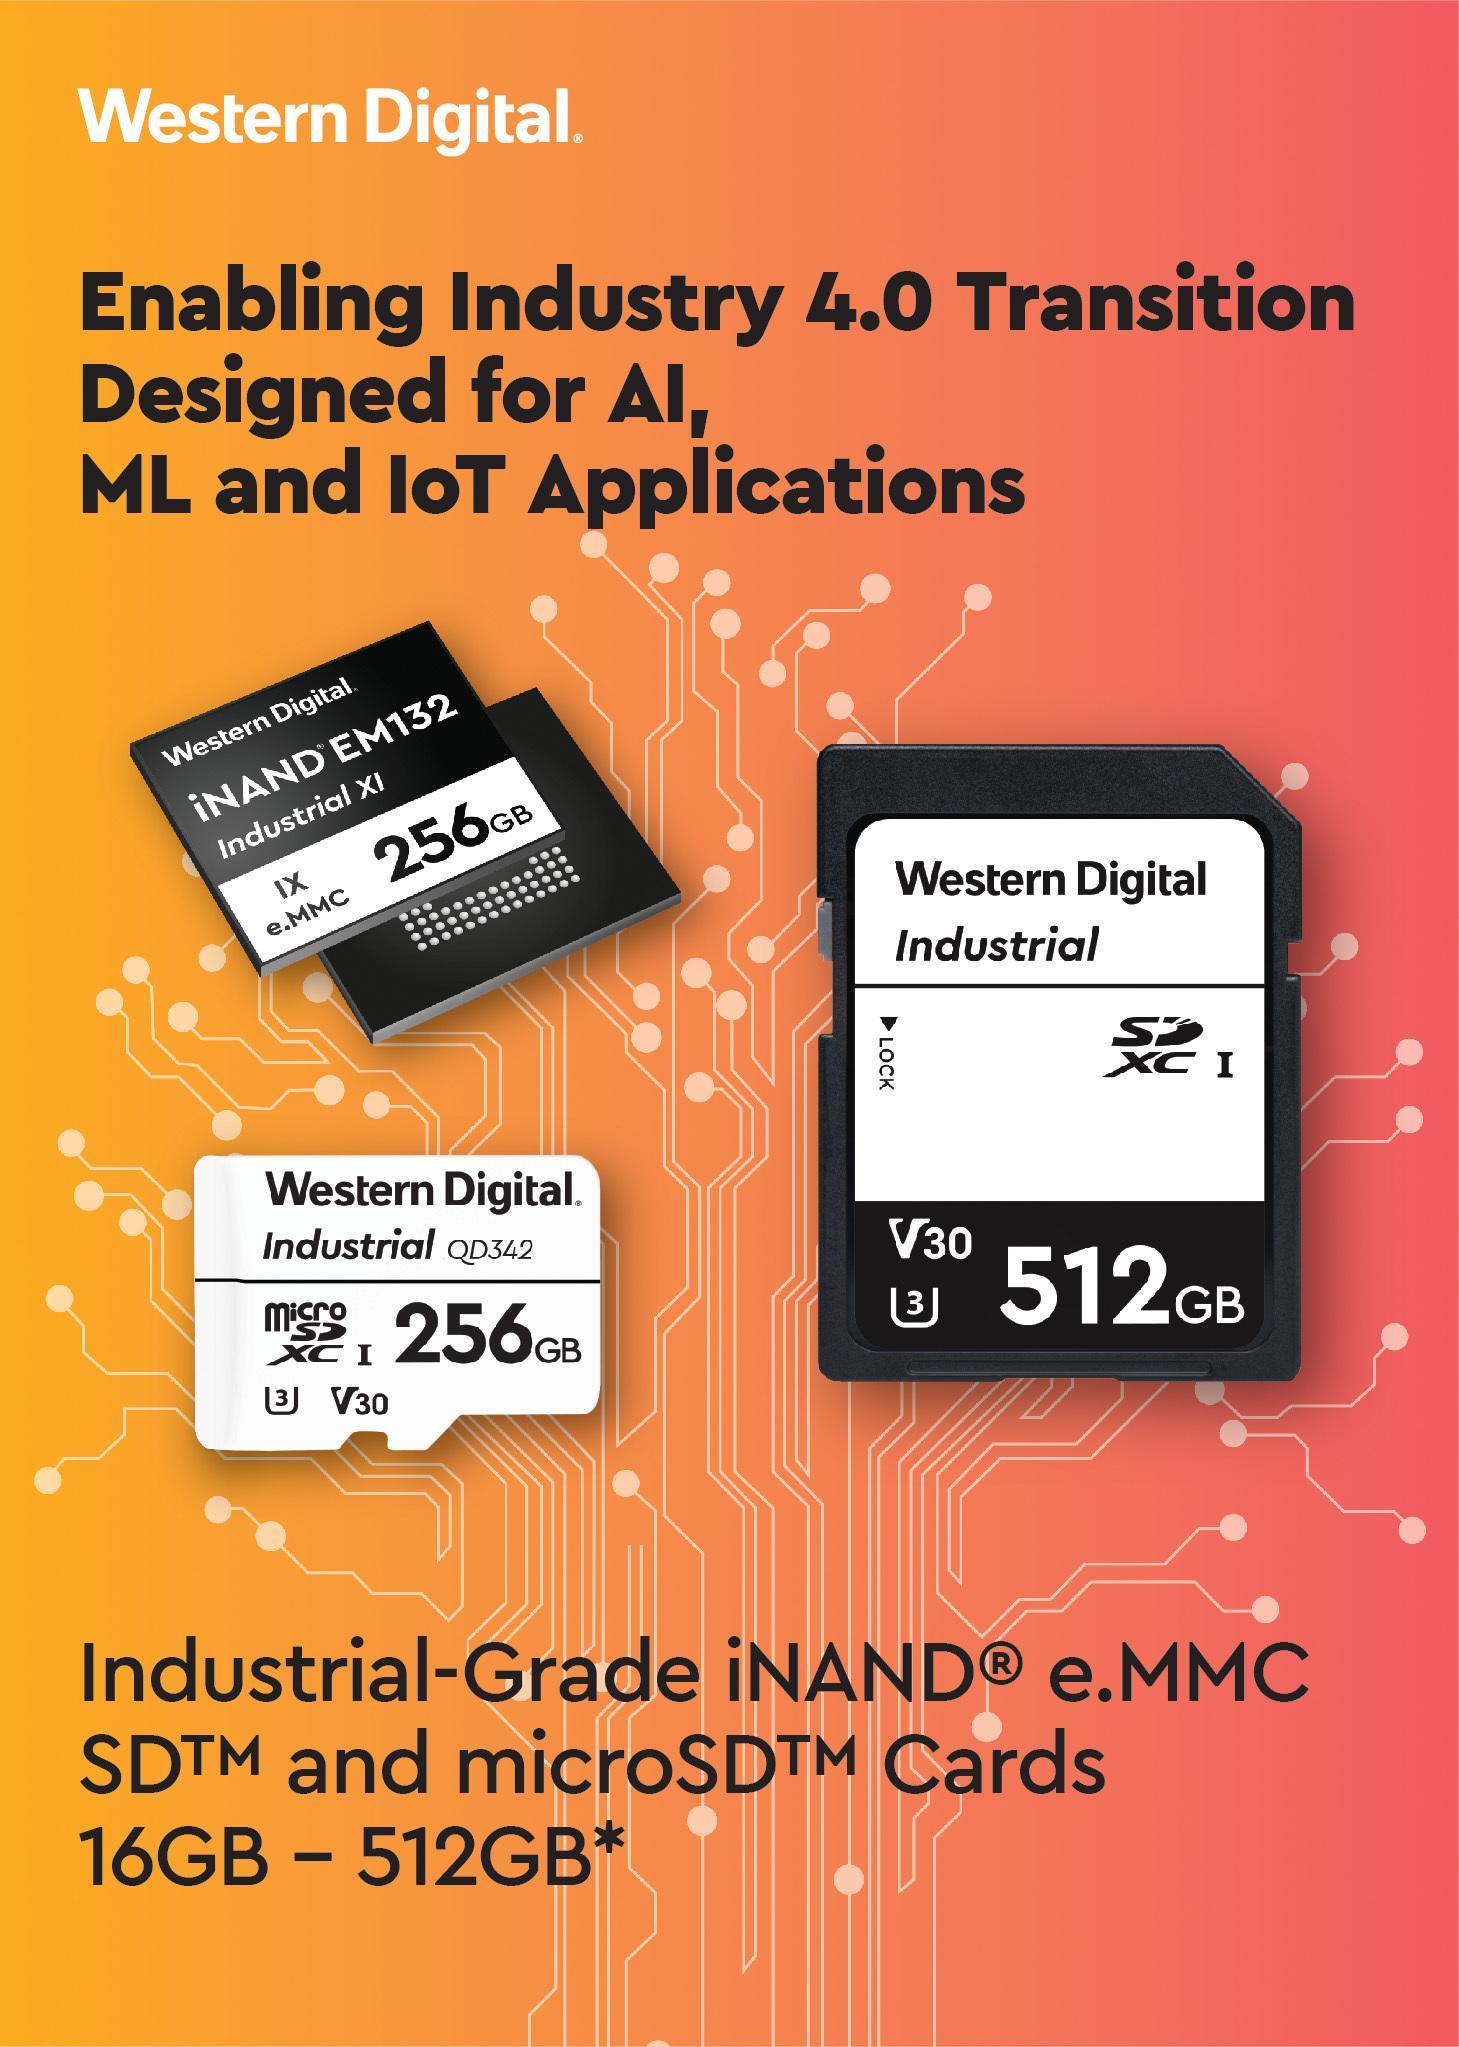 Western Digital Enables Industry 4.0 Transition With High-Endurance Storage Solutions for Industrial-Grade AI, ML and IoT Applications